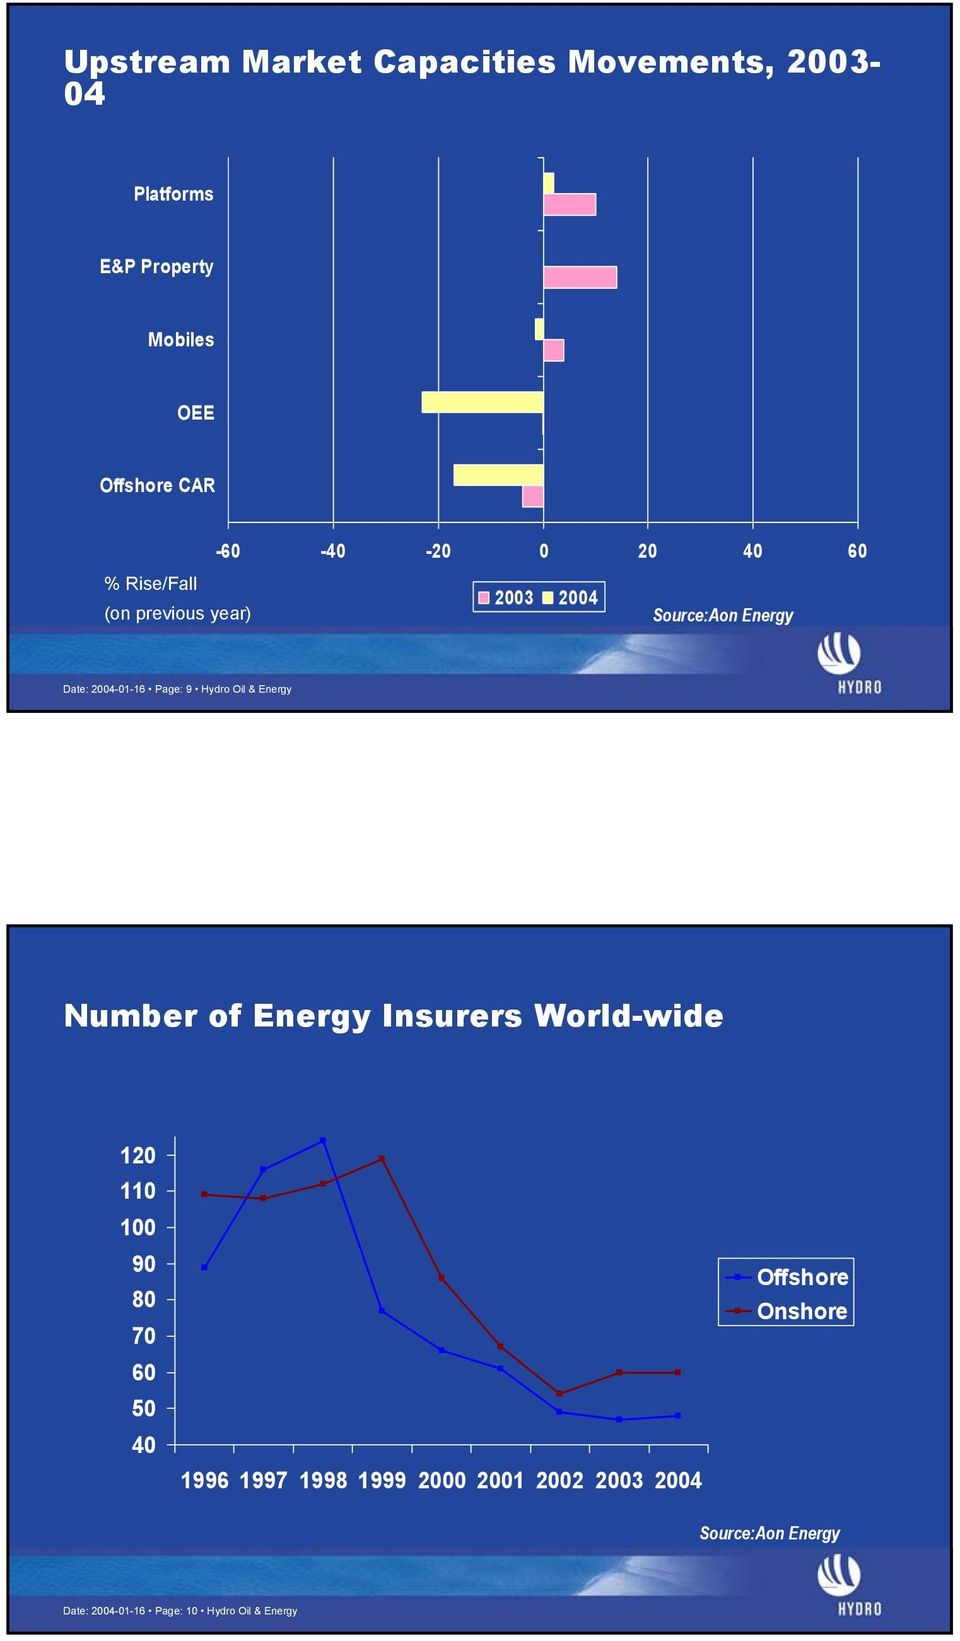 Hydro Oil & Energy Number of Energy Insurers World-wide 120 110 100 90 80 70 60 50 40 1996 1997 1998